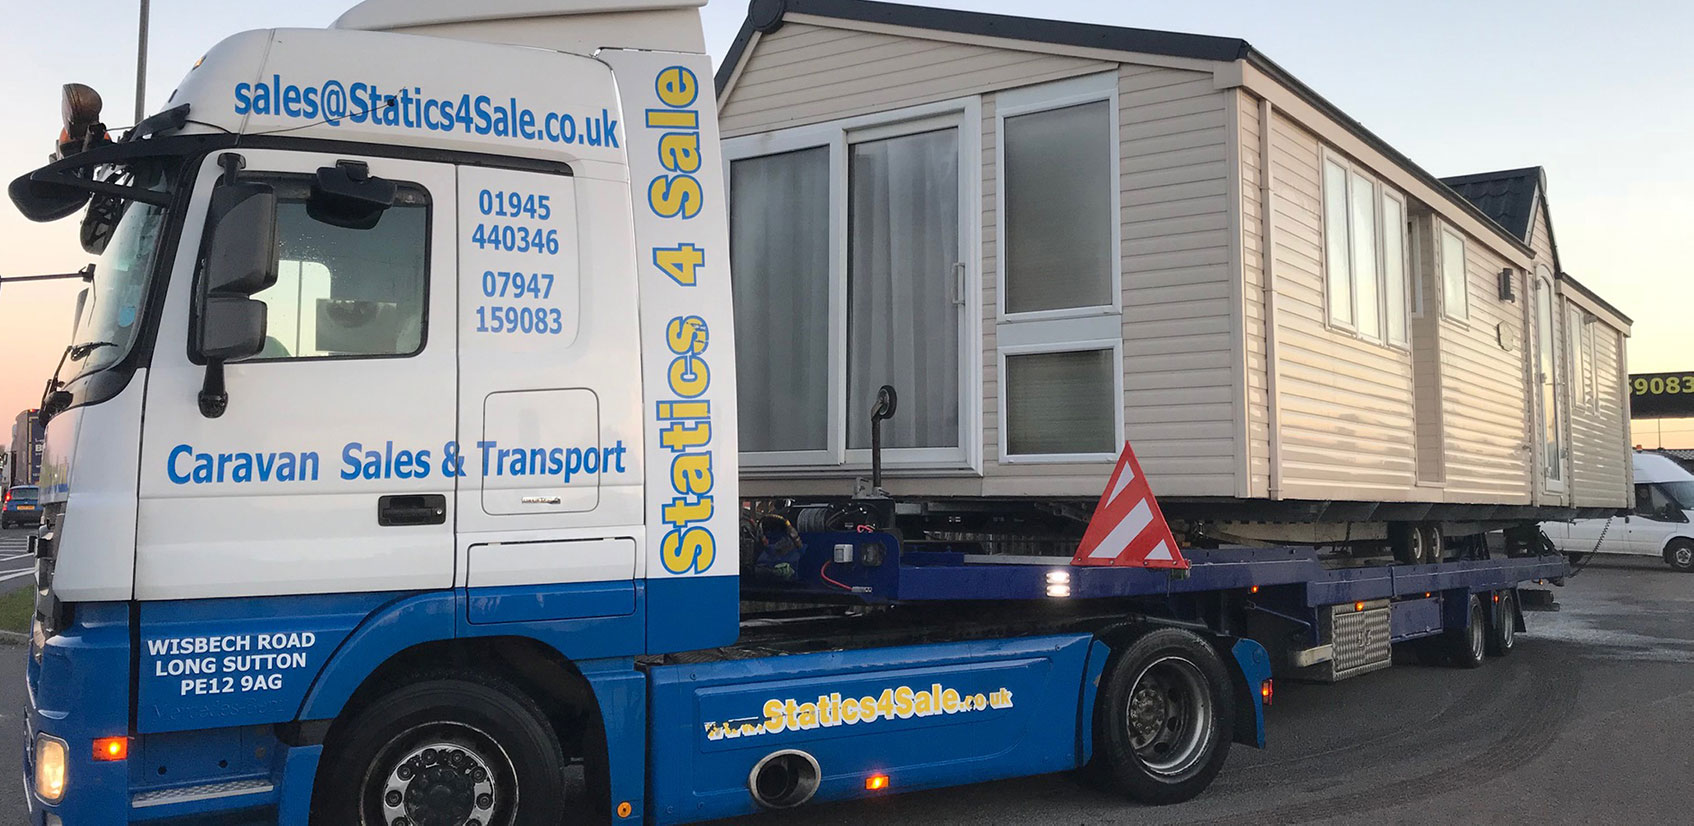 We offer a comprehensive, nationwide, sales, hire & transport service